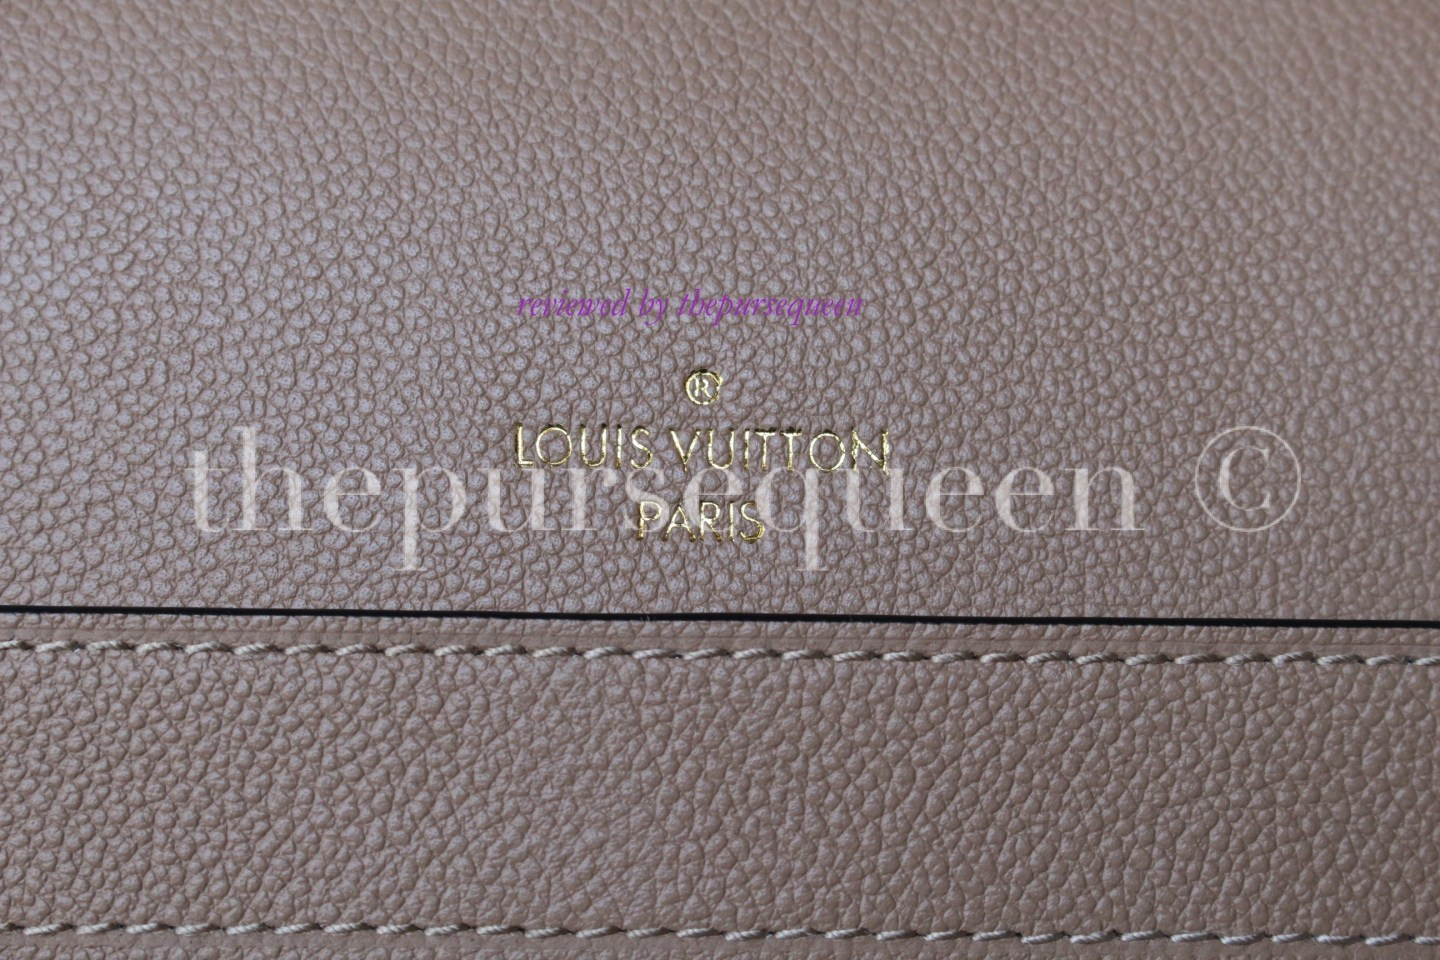 louis vuitton empreinte Trocadero replica authentic review logo bag stamping